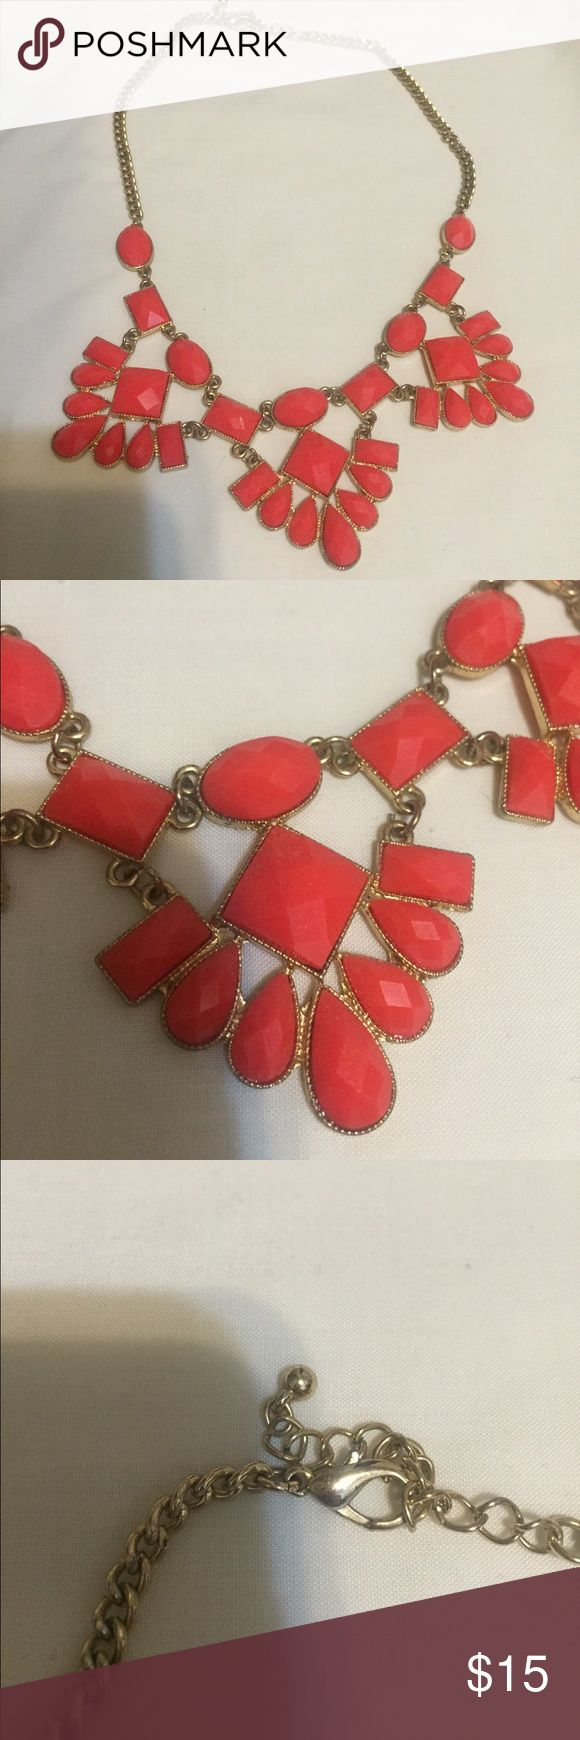 Baublebar Coral Statement Necklace Red BAUBLEBAR statement necklace. Color is bright, perfect for summer to dress up a simple shirt or dress. Gold detailing and chain.  Very light and easy to wear! Baublebar Jewelry Necklaces